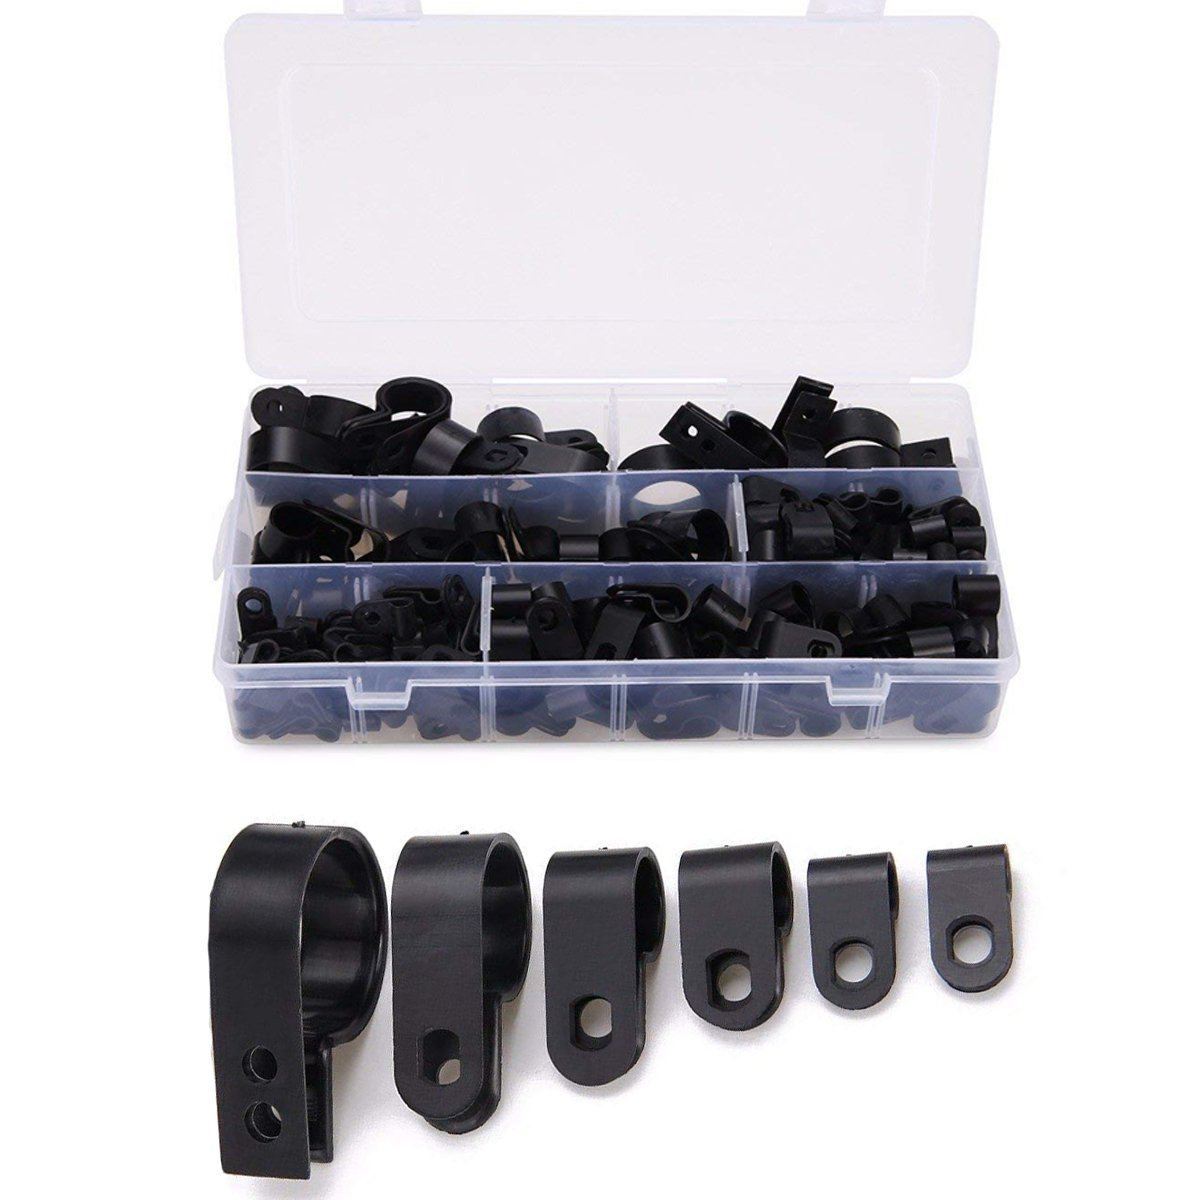 Cable Clamp 200 Pcs Black Nylon Screws Plastic R-type Cable Clamp Clips Fasteners Assortment for Cable Conduit 6 Sizes 5mm to 25mm